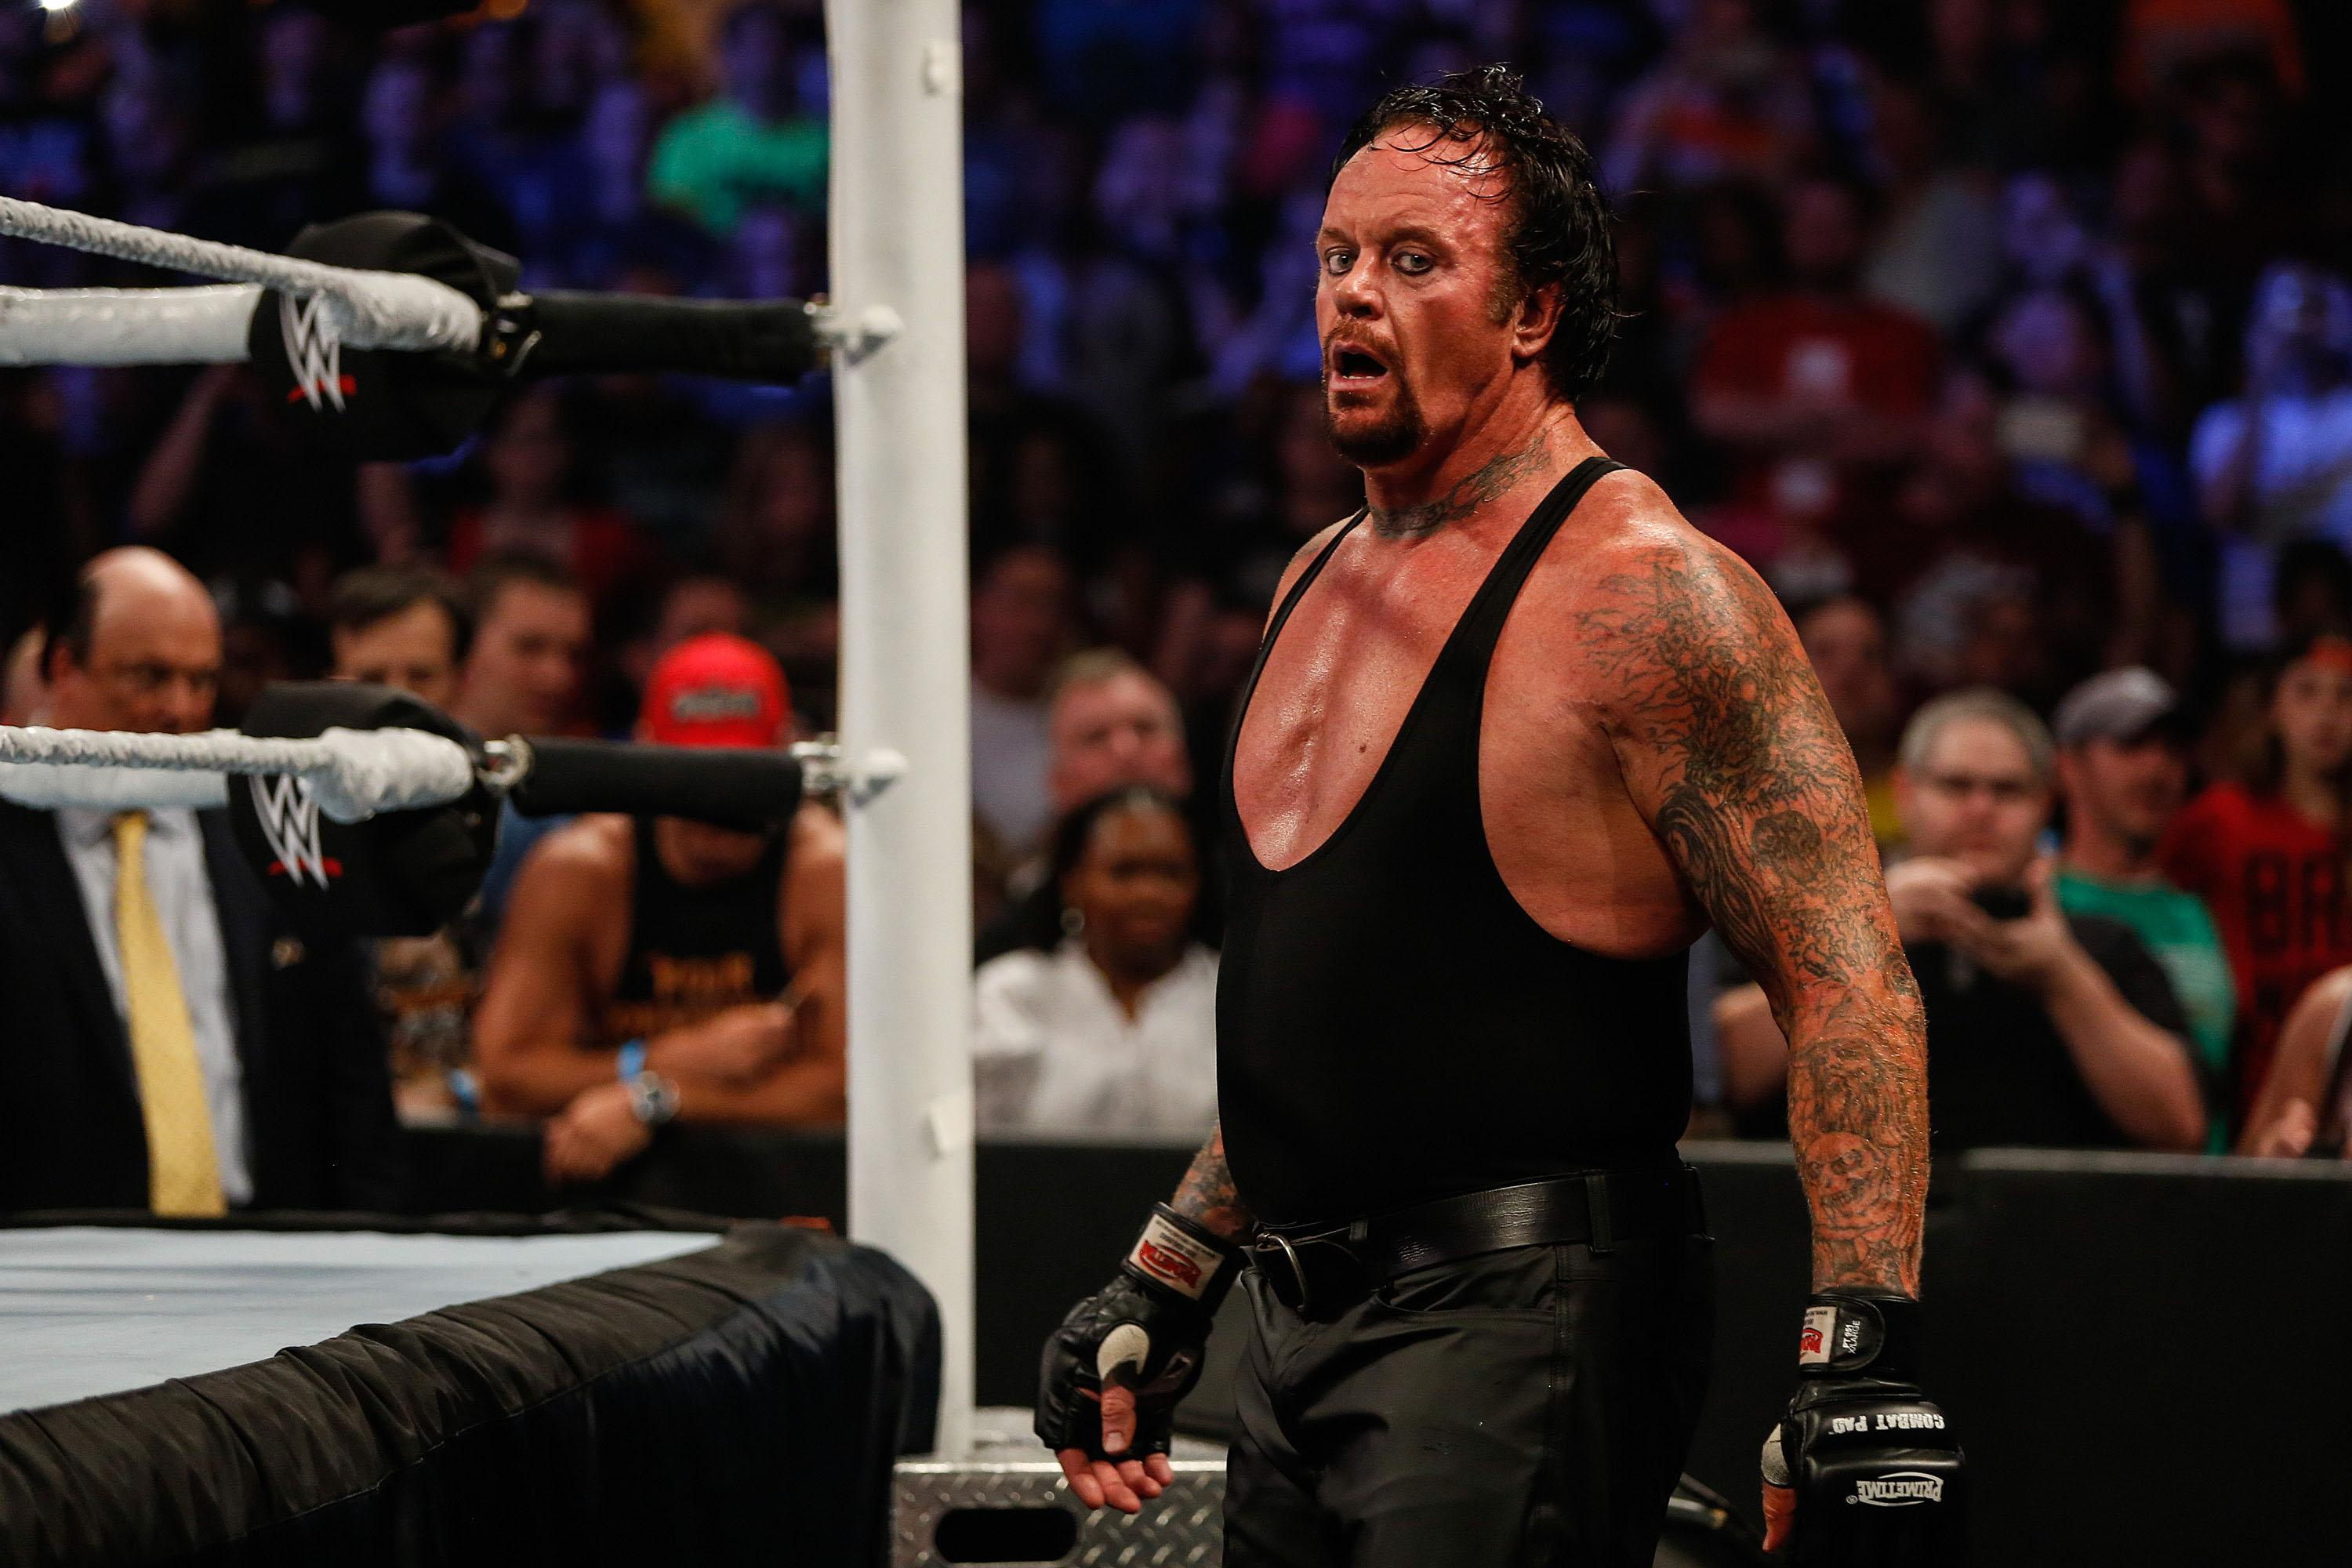 Royal Rumble: Undertaker-Lesnar-Goldberg clash; John Cena chases history